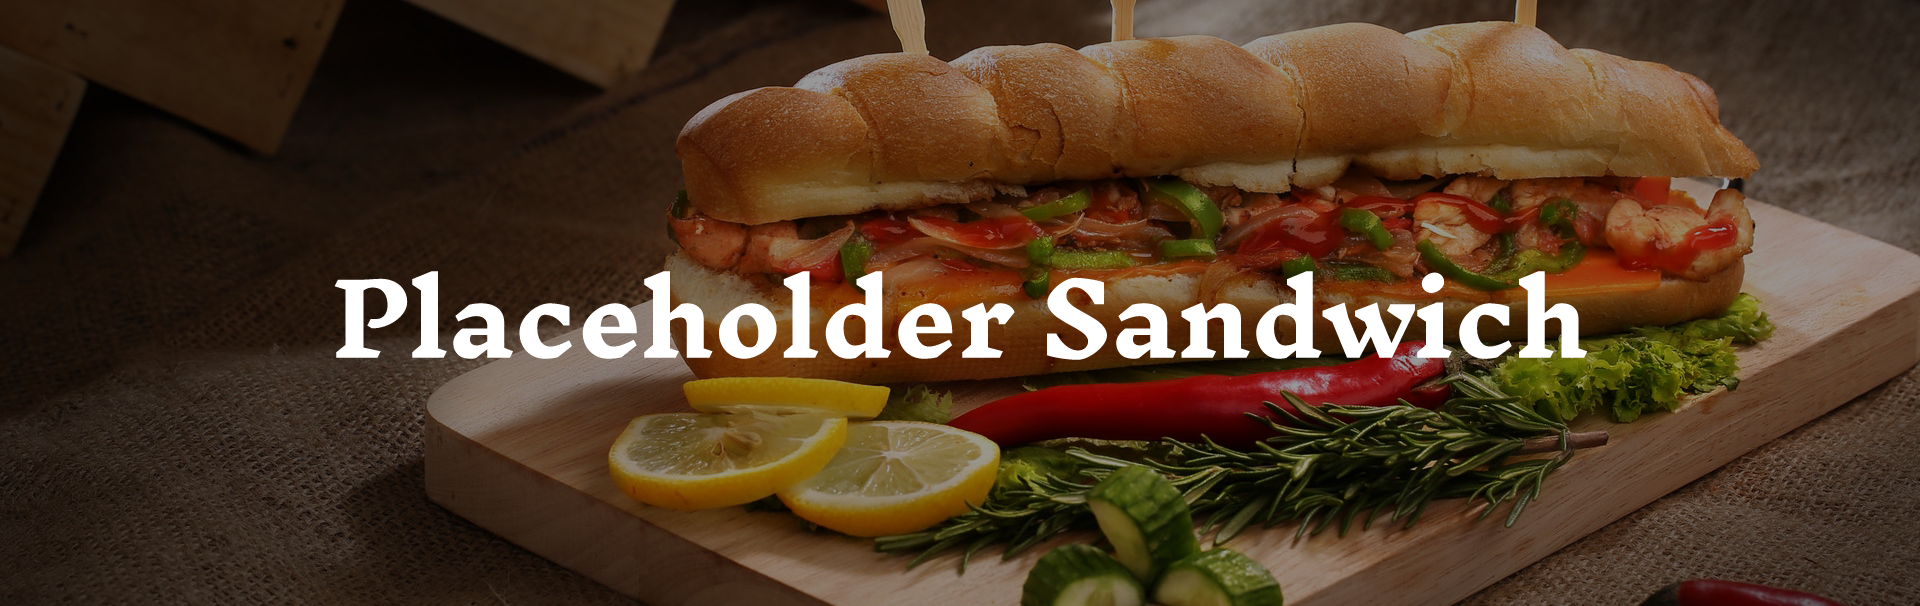 Placeholder Sandwich